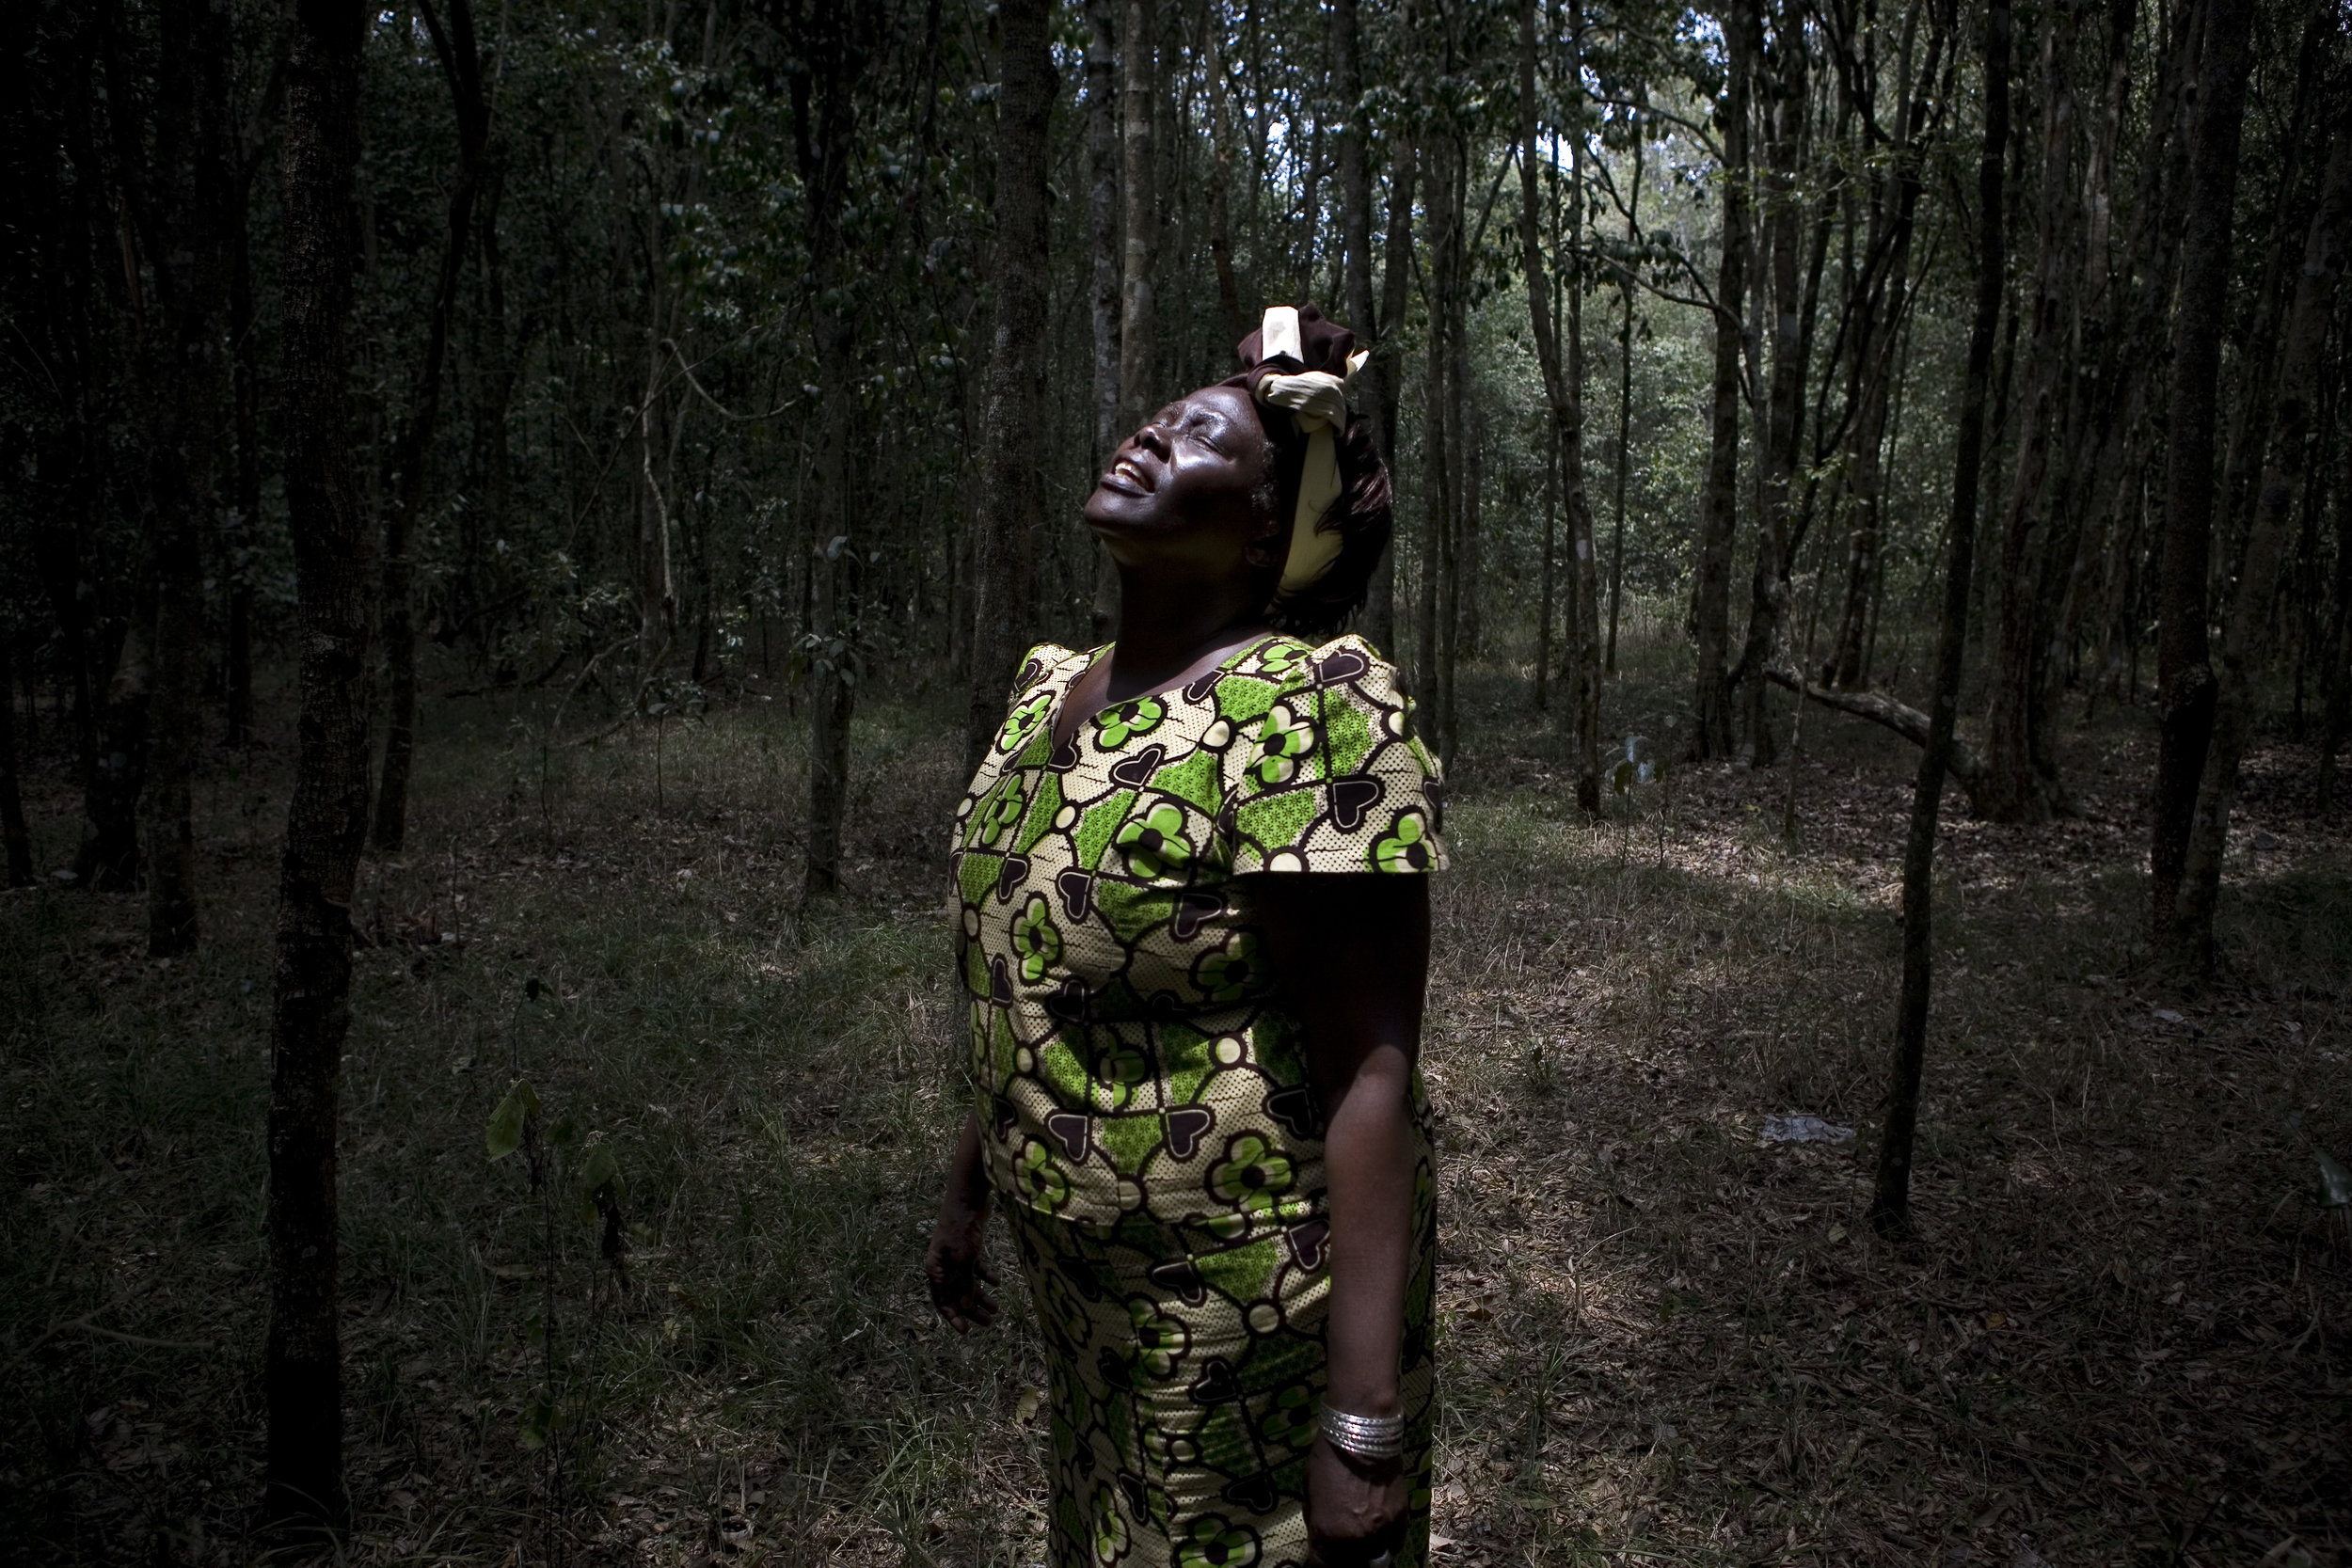 Nobel peace price winner Wangari Maathai, the first African woman and environmentalist to win the prize, in Karura Forest, Kenya.